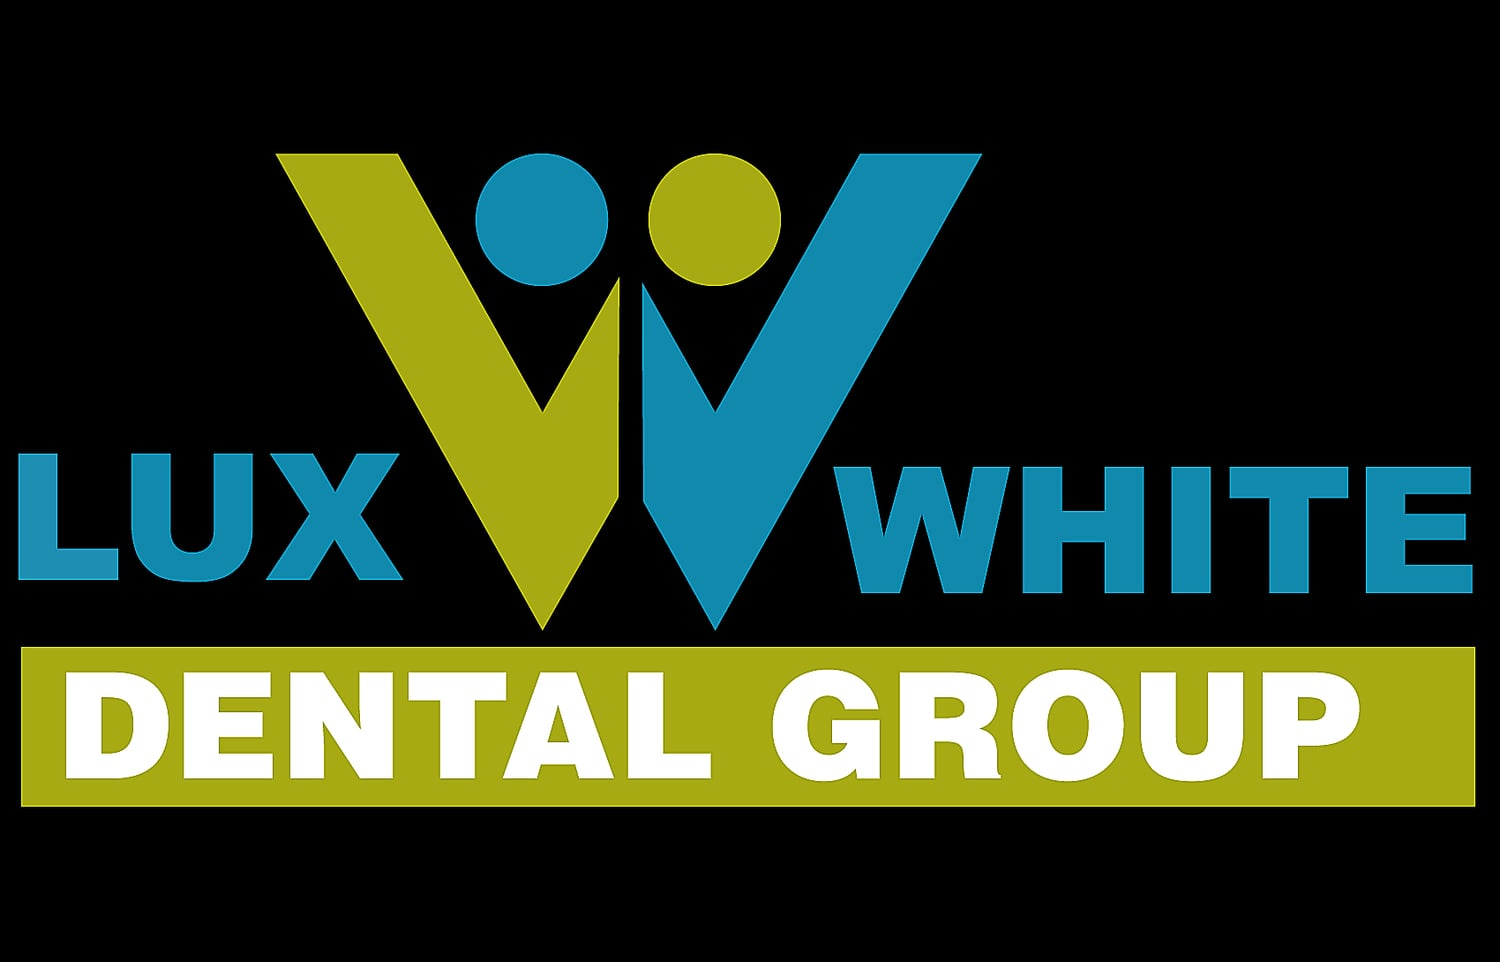 Lux White Dental Group